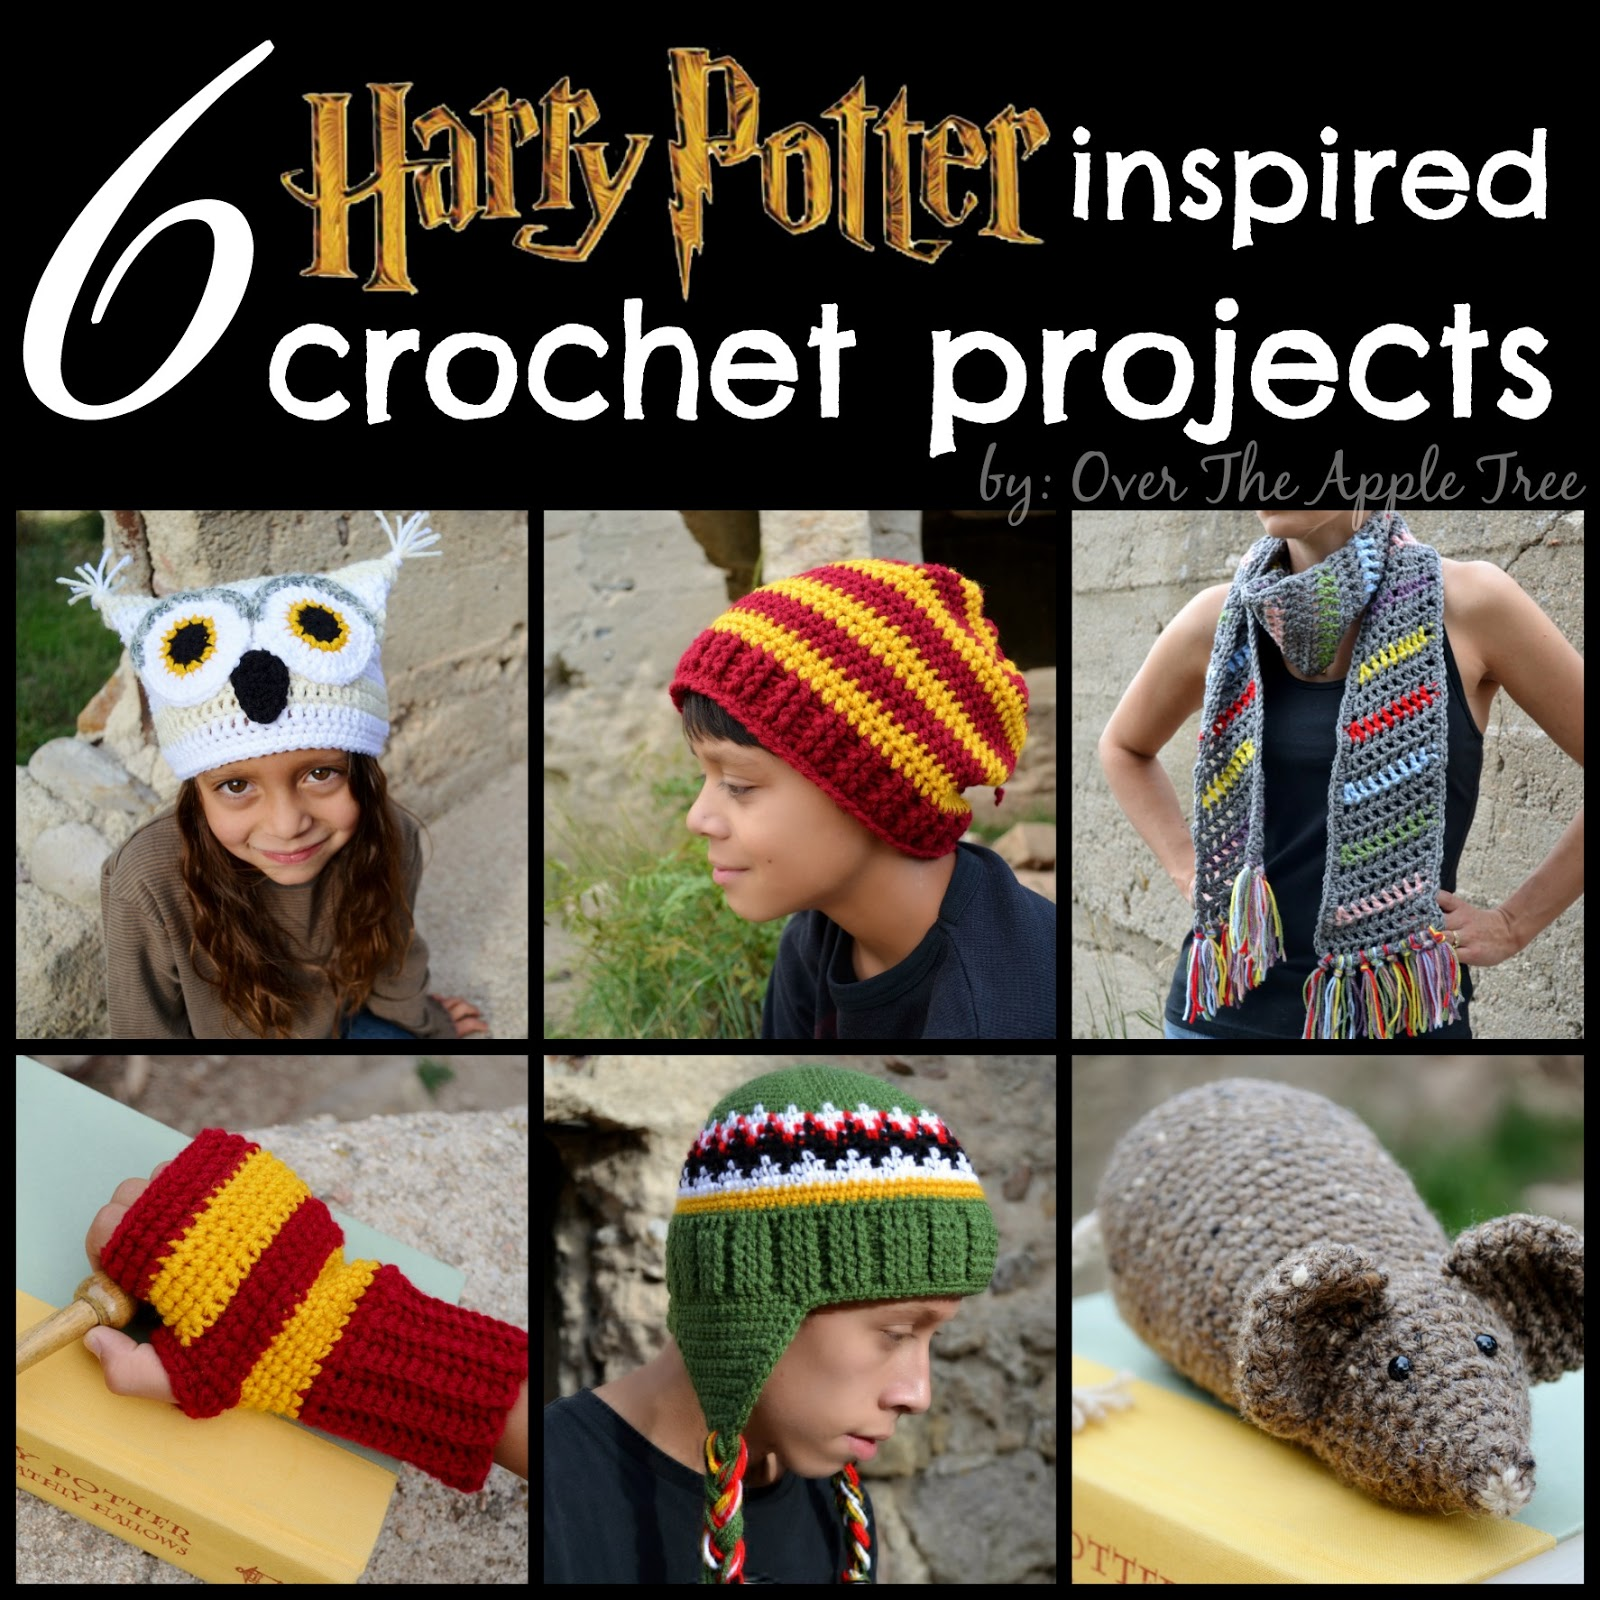 Harry Potter Inspired Crochet » Over The Apple Tree